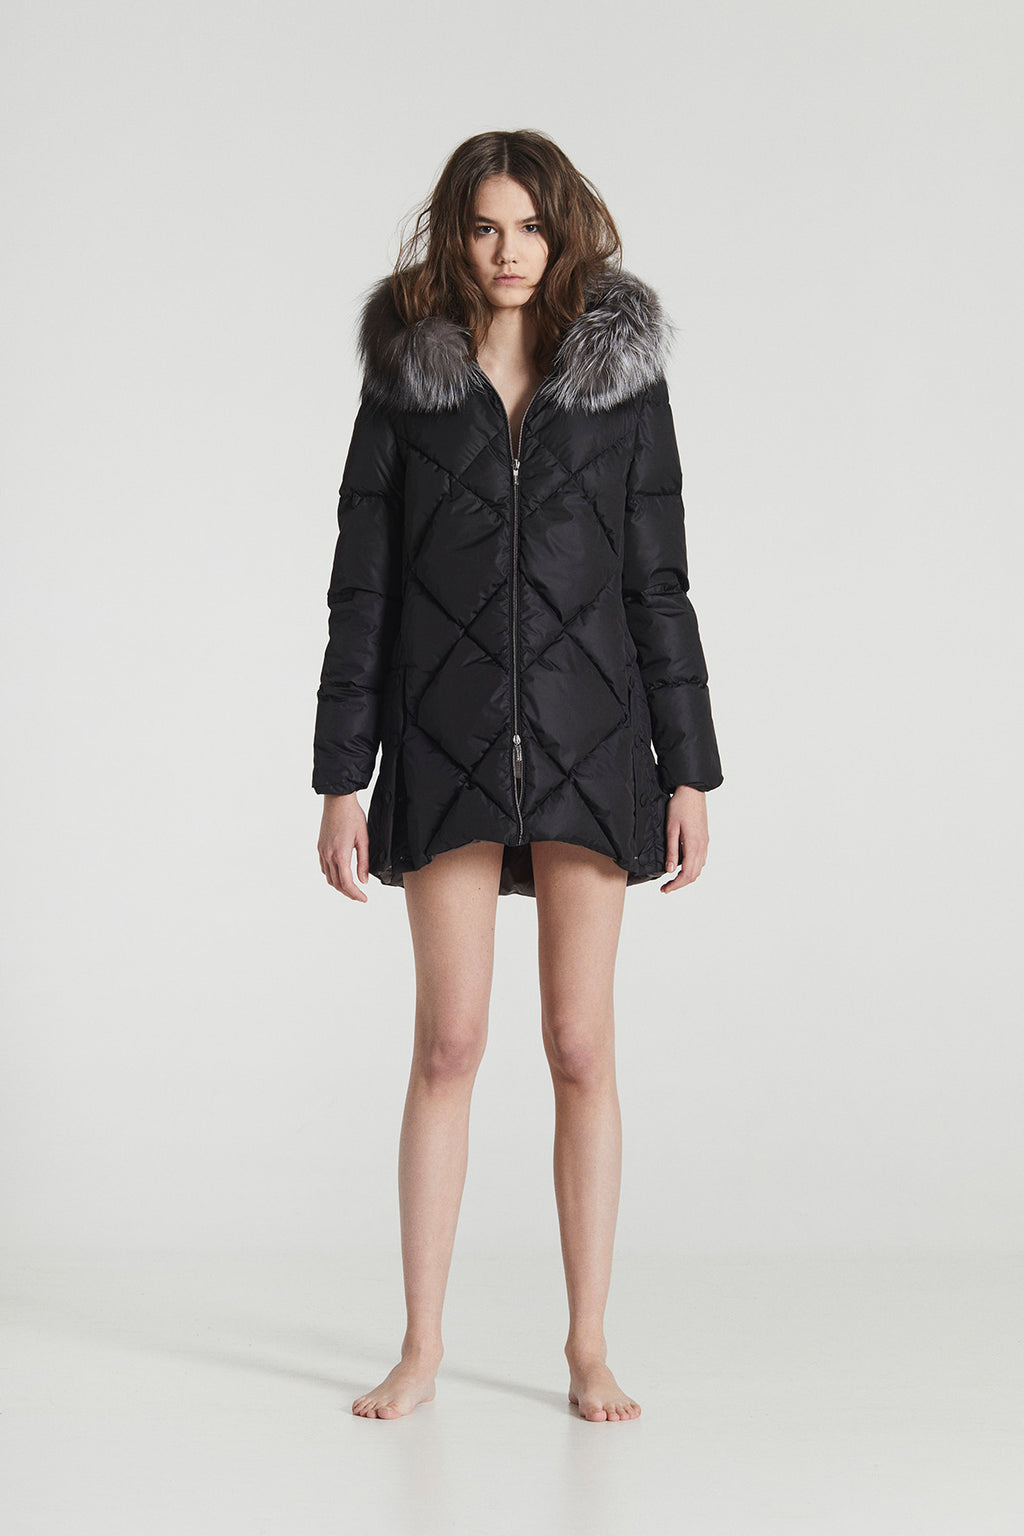 CARLA MINI / Black & White Goose Down diamond stitched Winter Coat